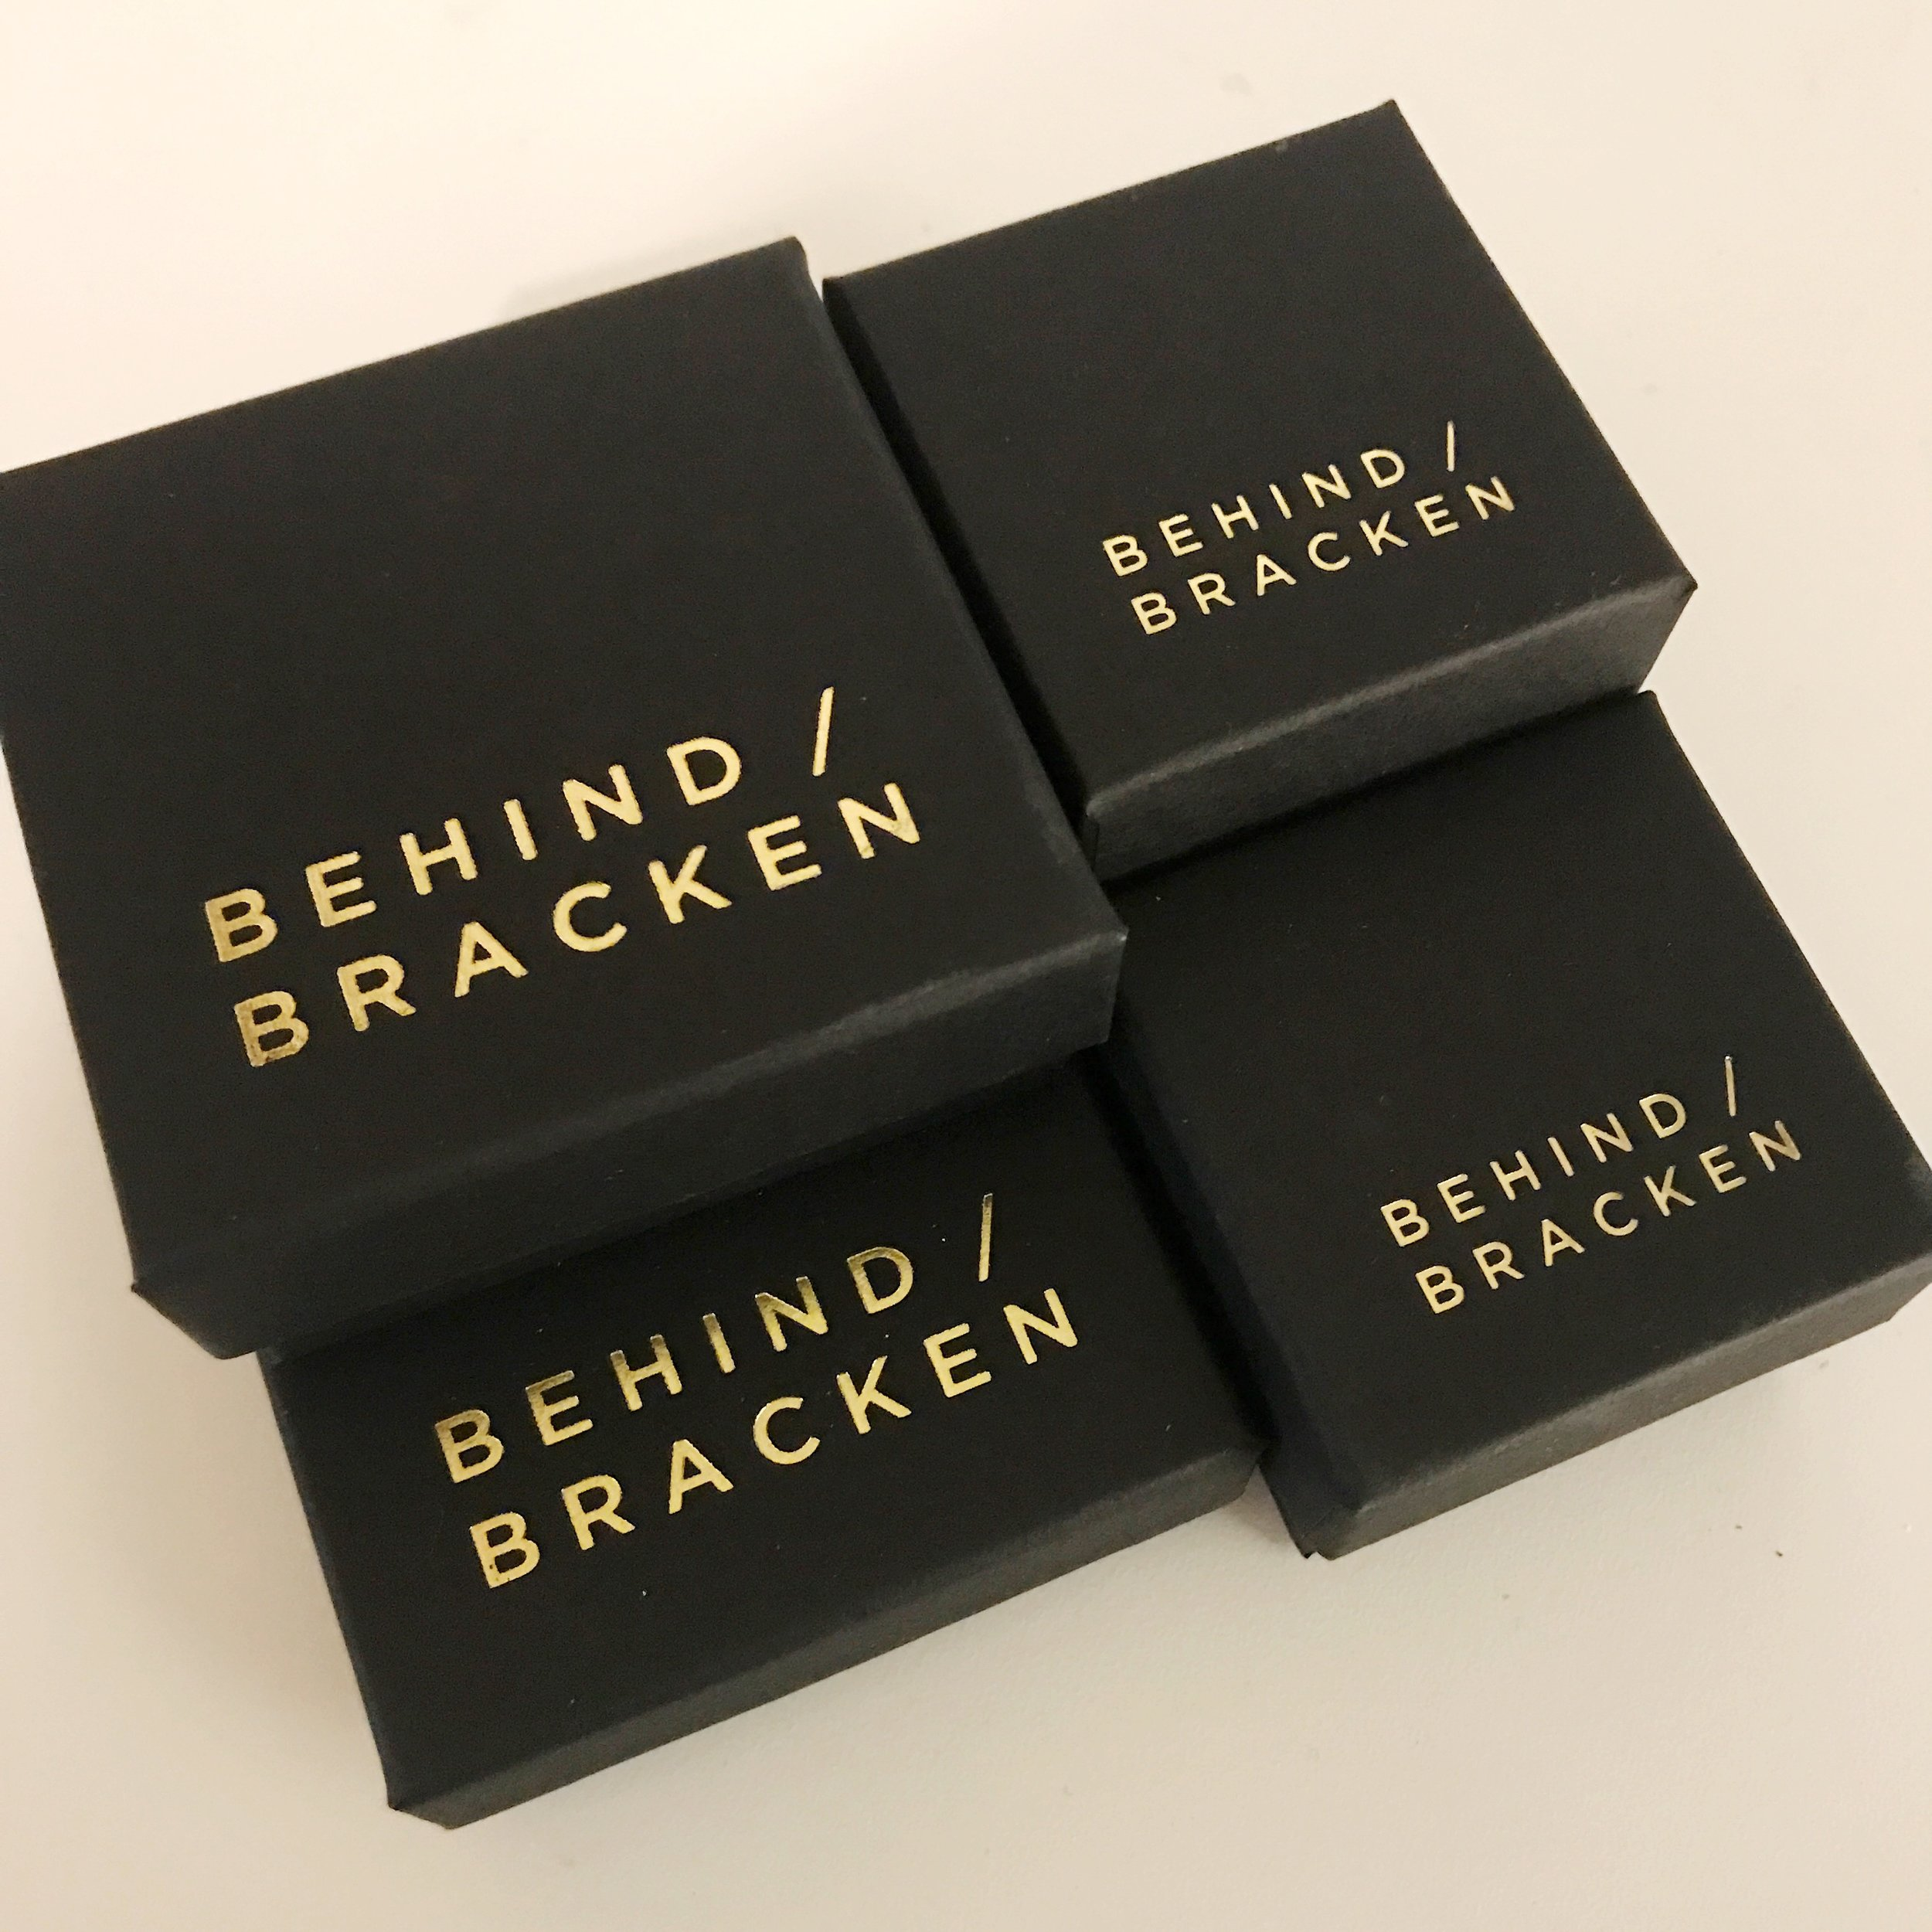 behind bracken packaging.jpeg